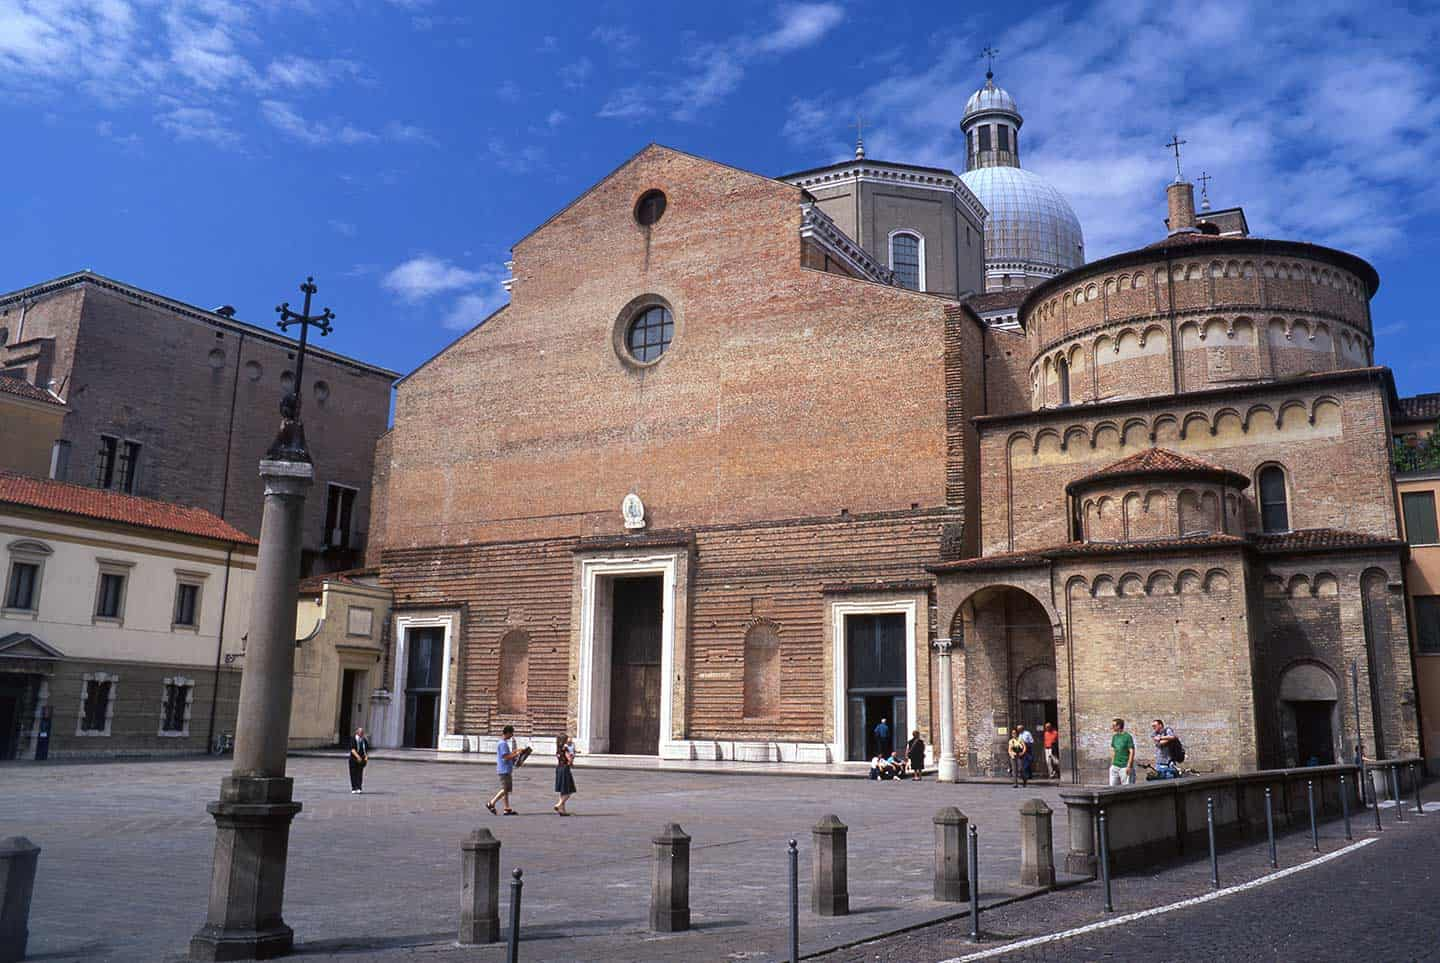 Image of Padua Duomo and Baptistery